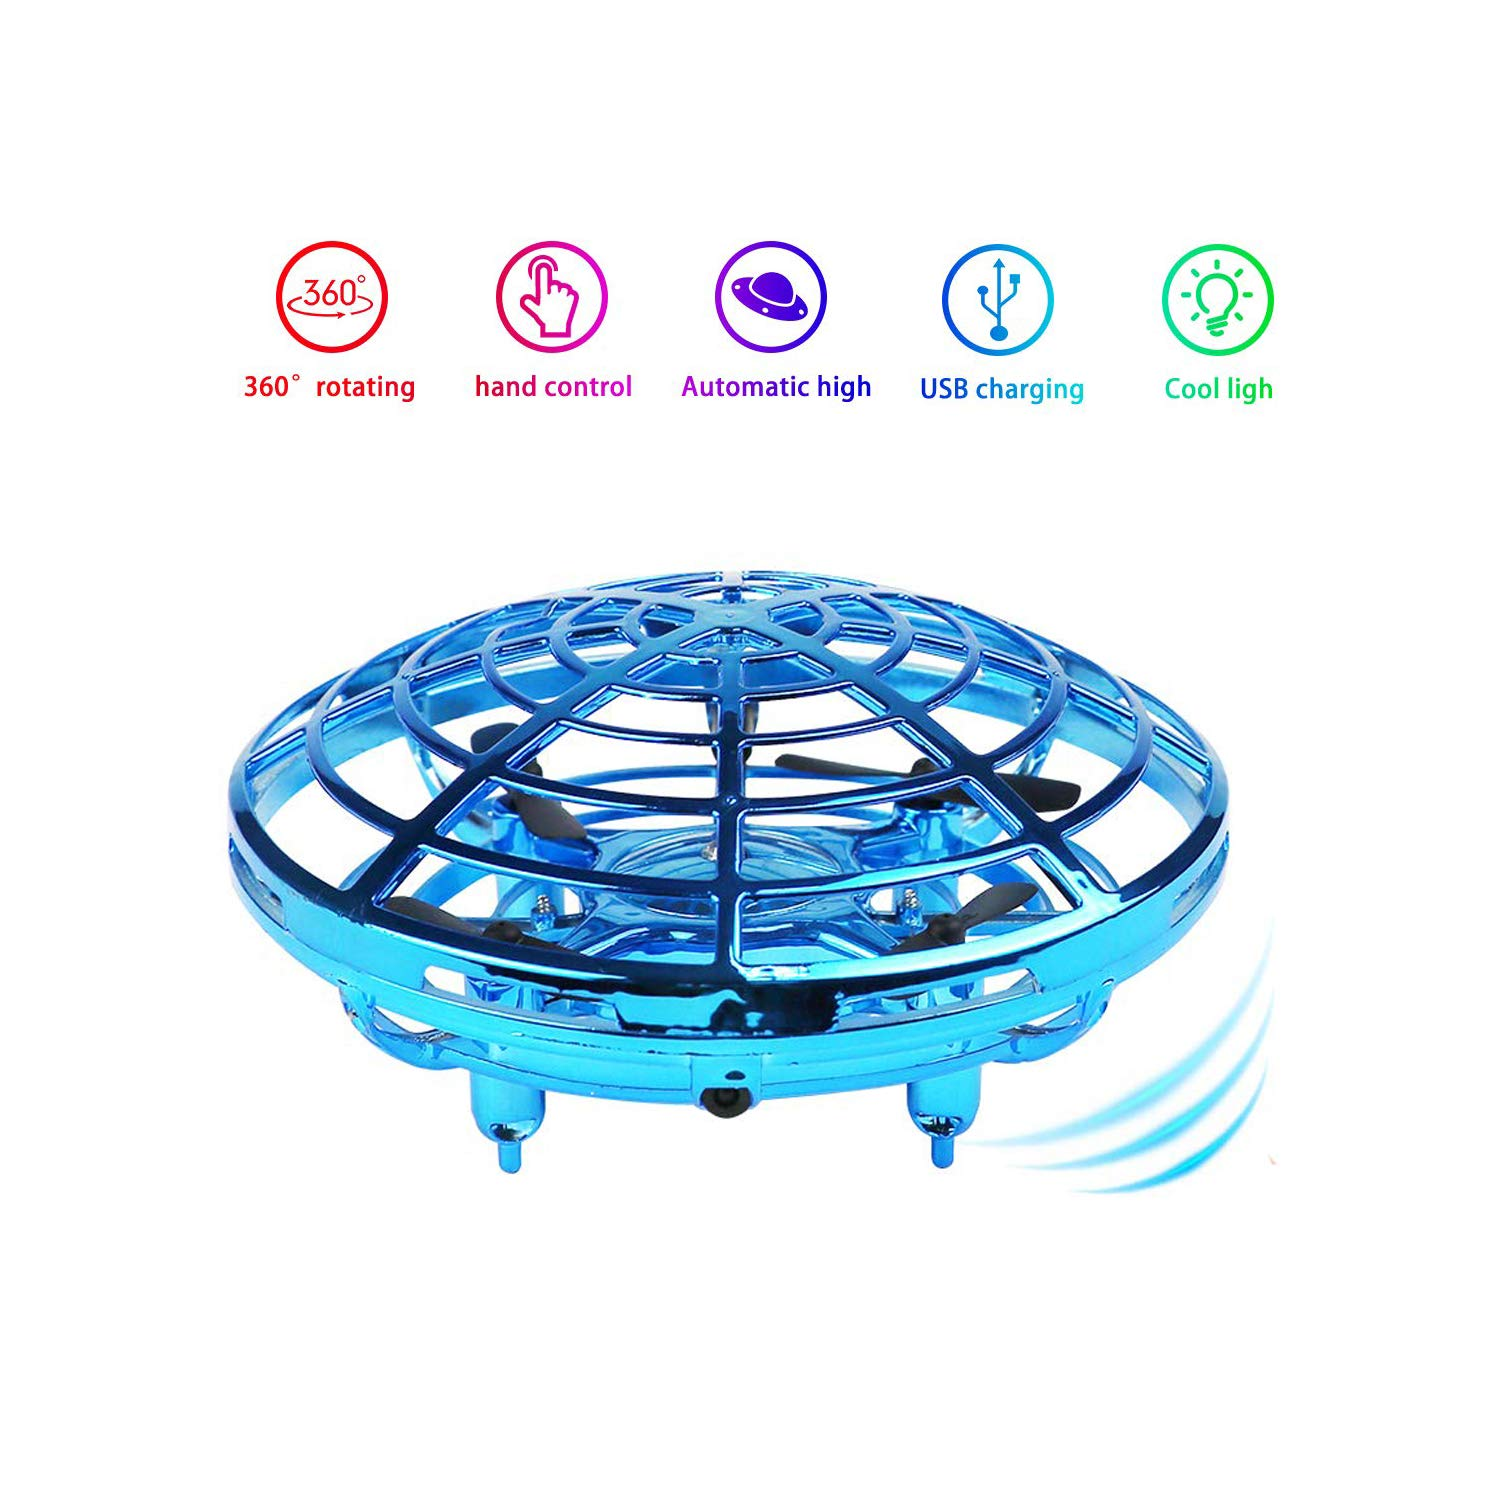 asuku Flying Ball Toy Drones,Hand Operated Drones for Kids or Adults - Scoot Flying Ball Drone,with 360°Rotating and Flashing LED Lights Mini Drone,for Boys and Girls, Kids Gifts (Blue) by asuku